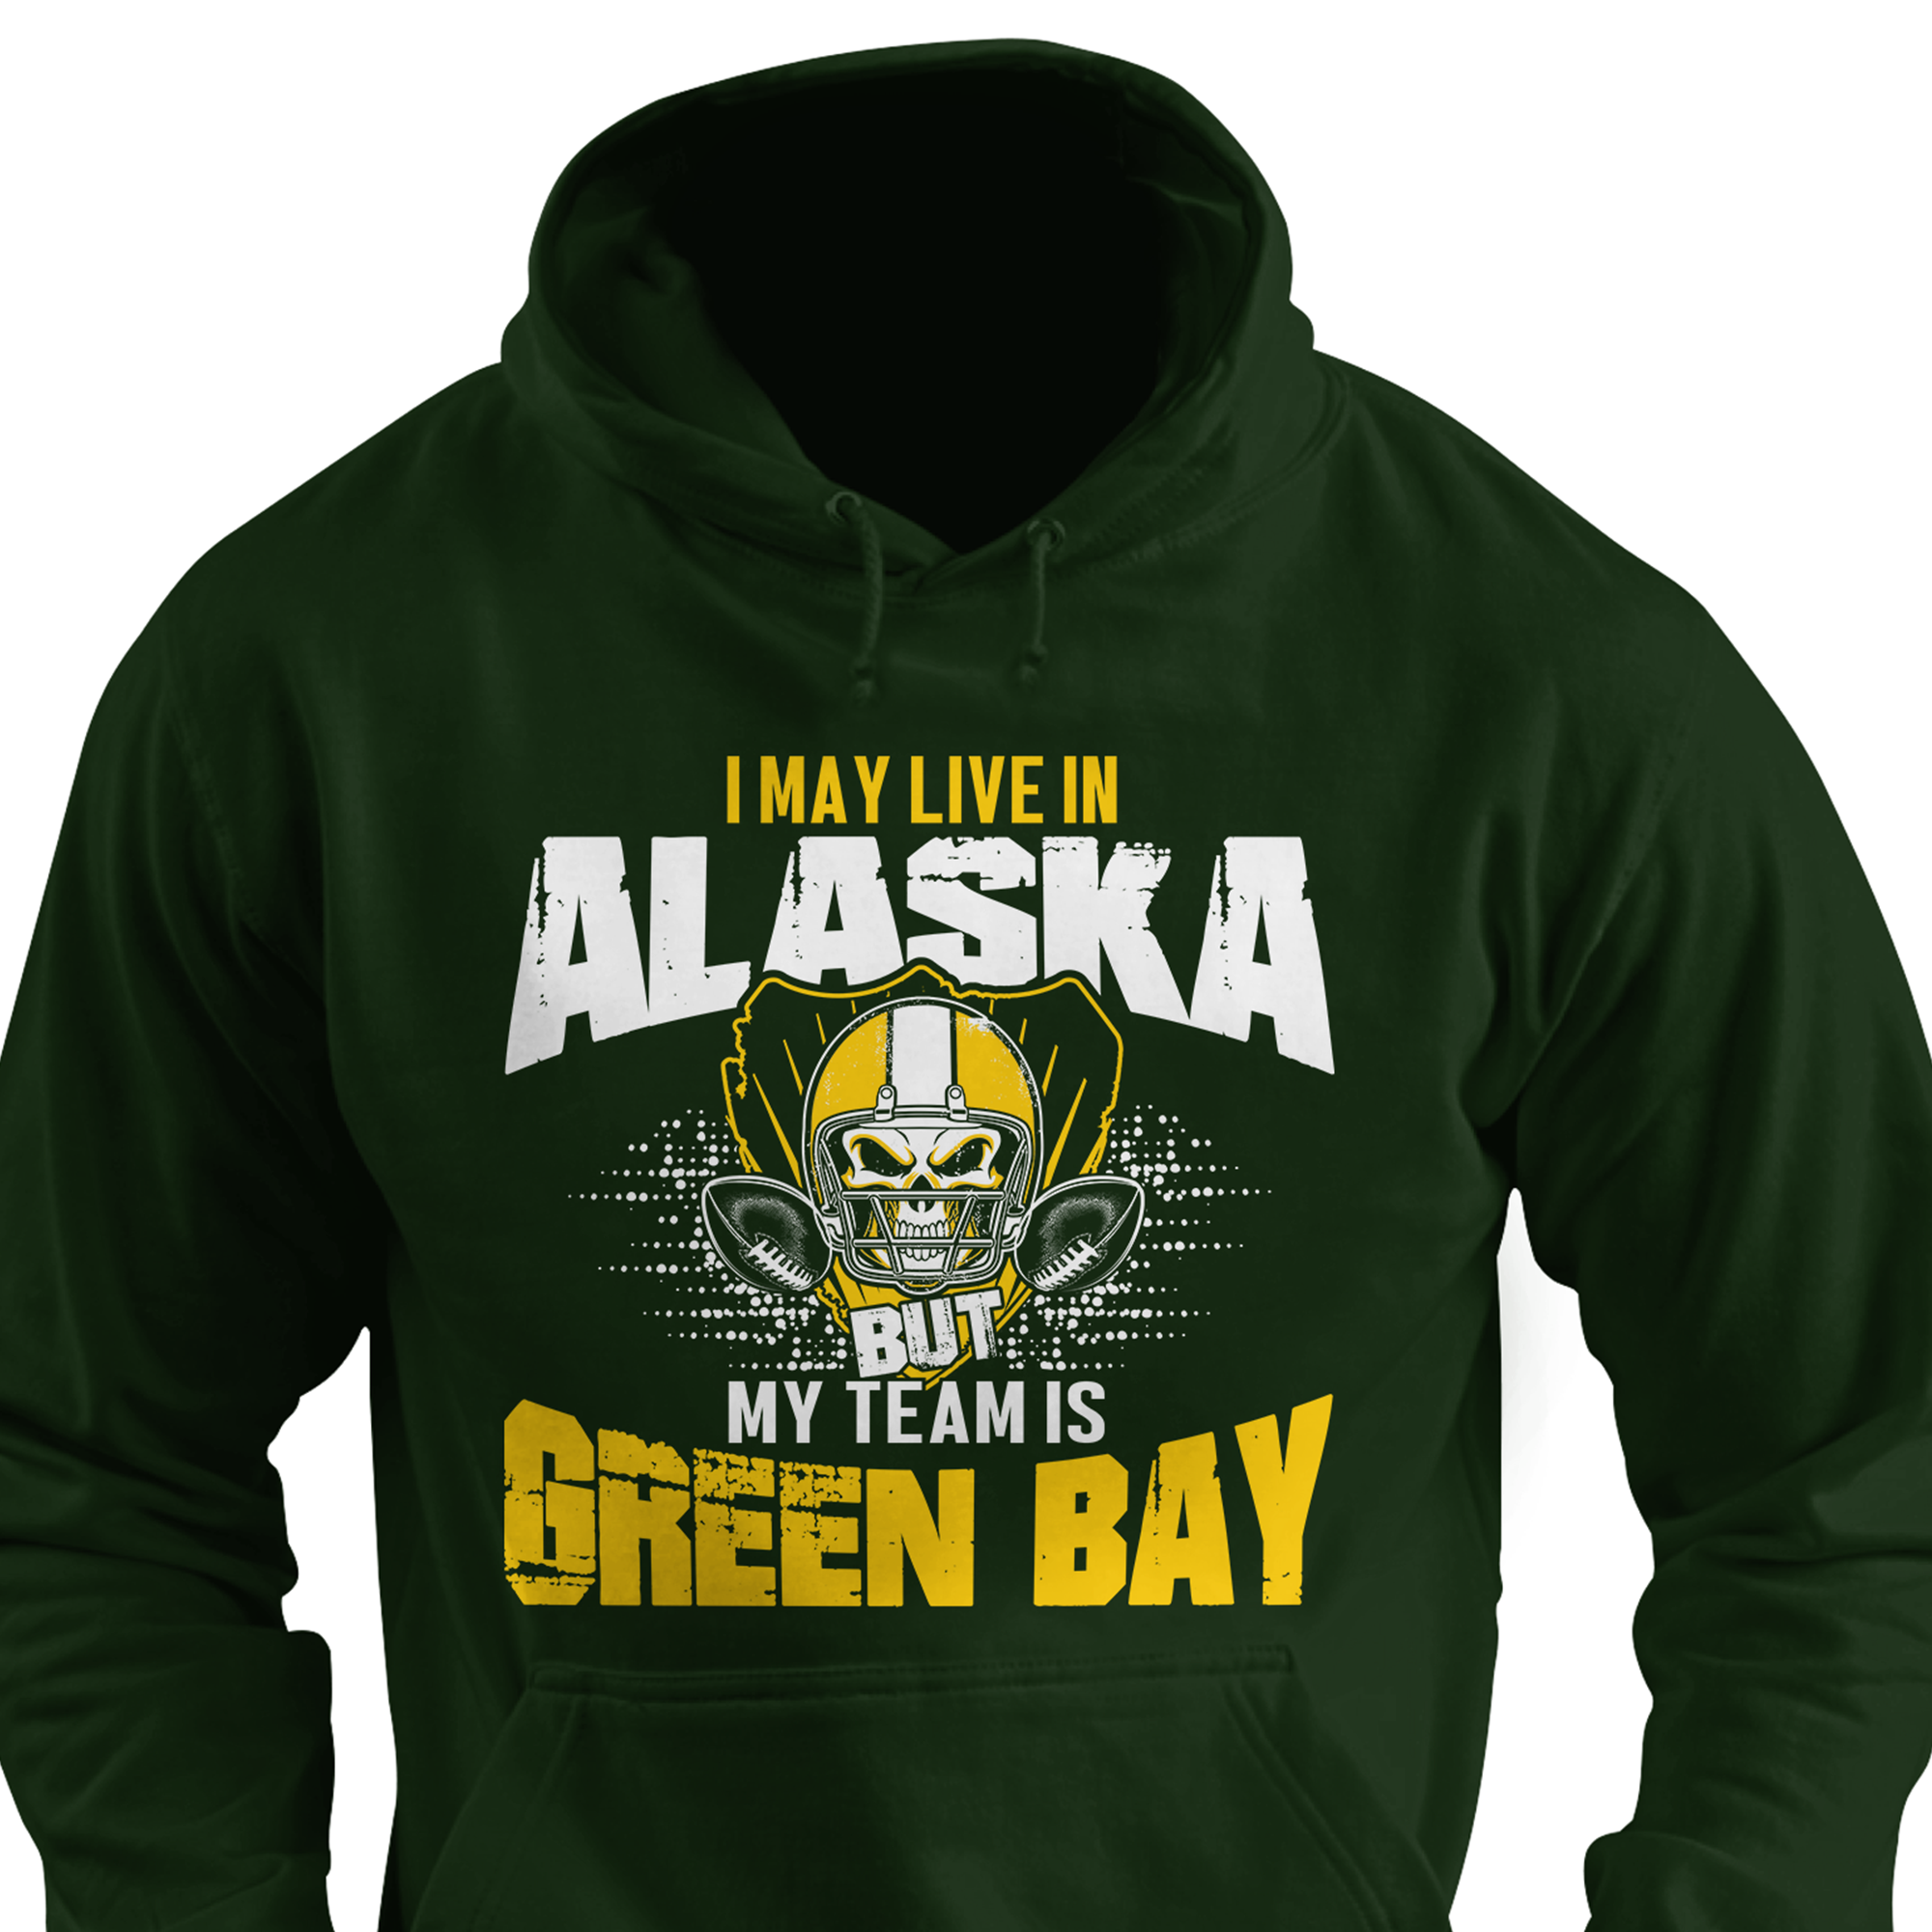 I May Live in Alaska but My Team is Green Bay